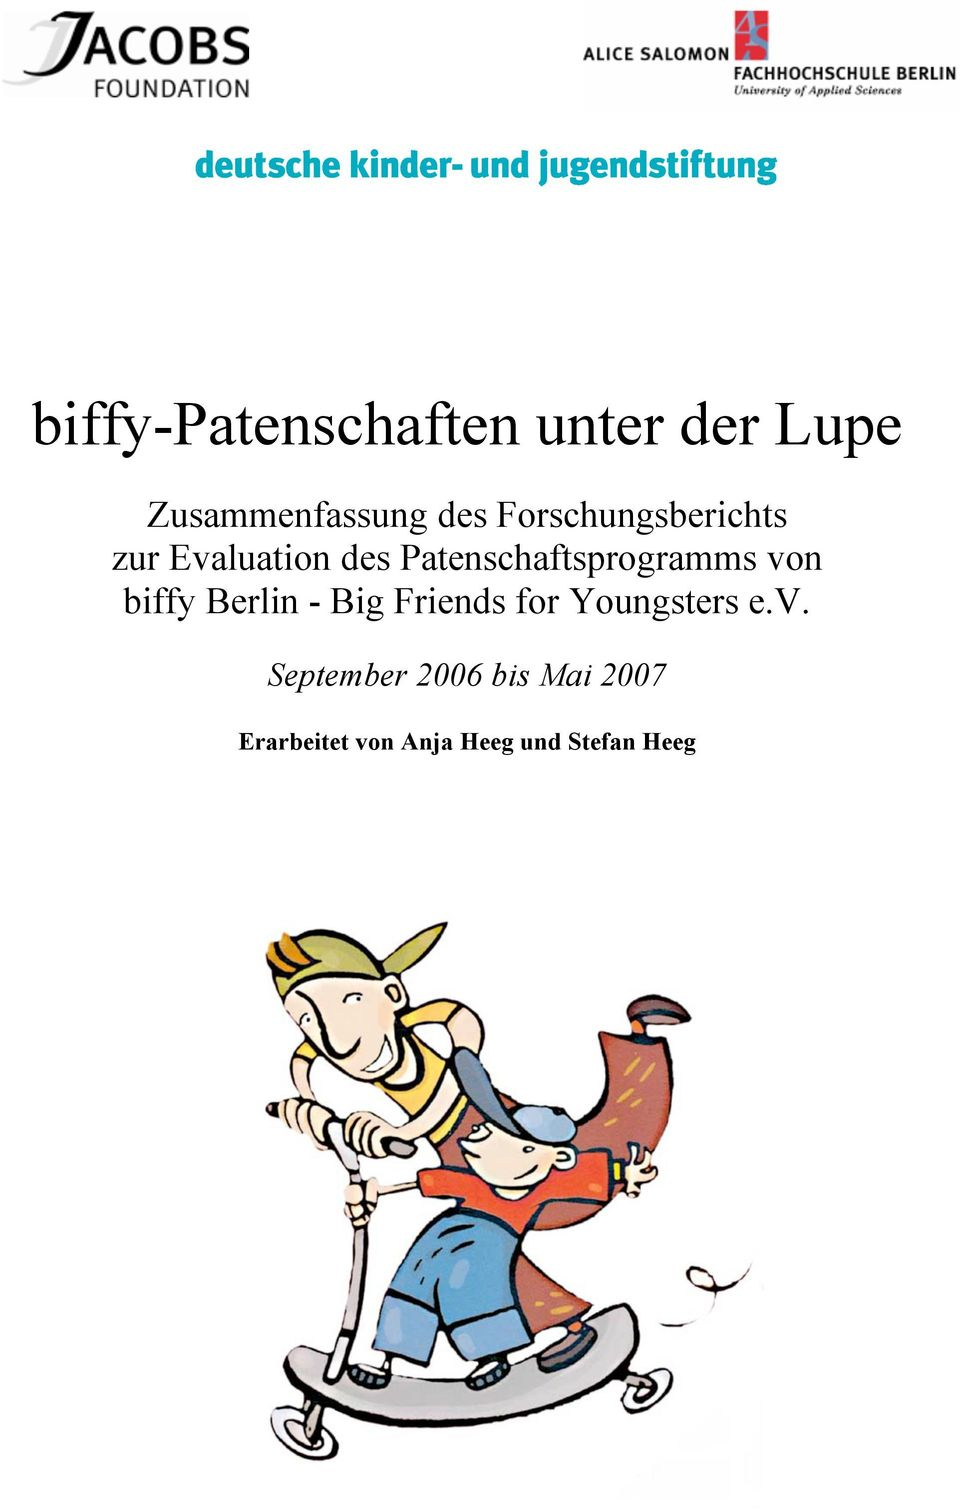 Patenschaftsprogramms von biffy Berlin - Big Friends for